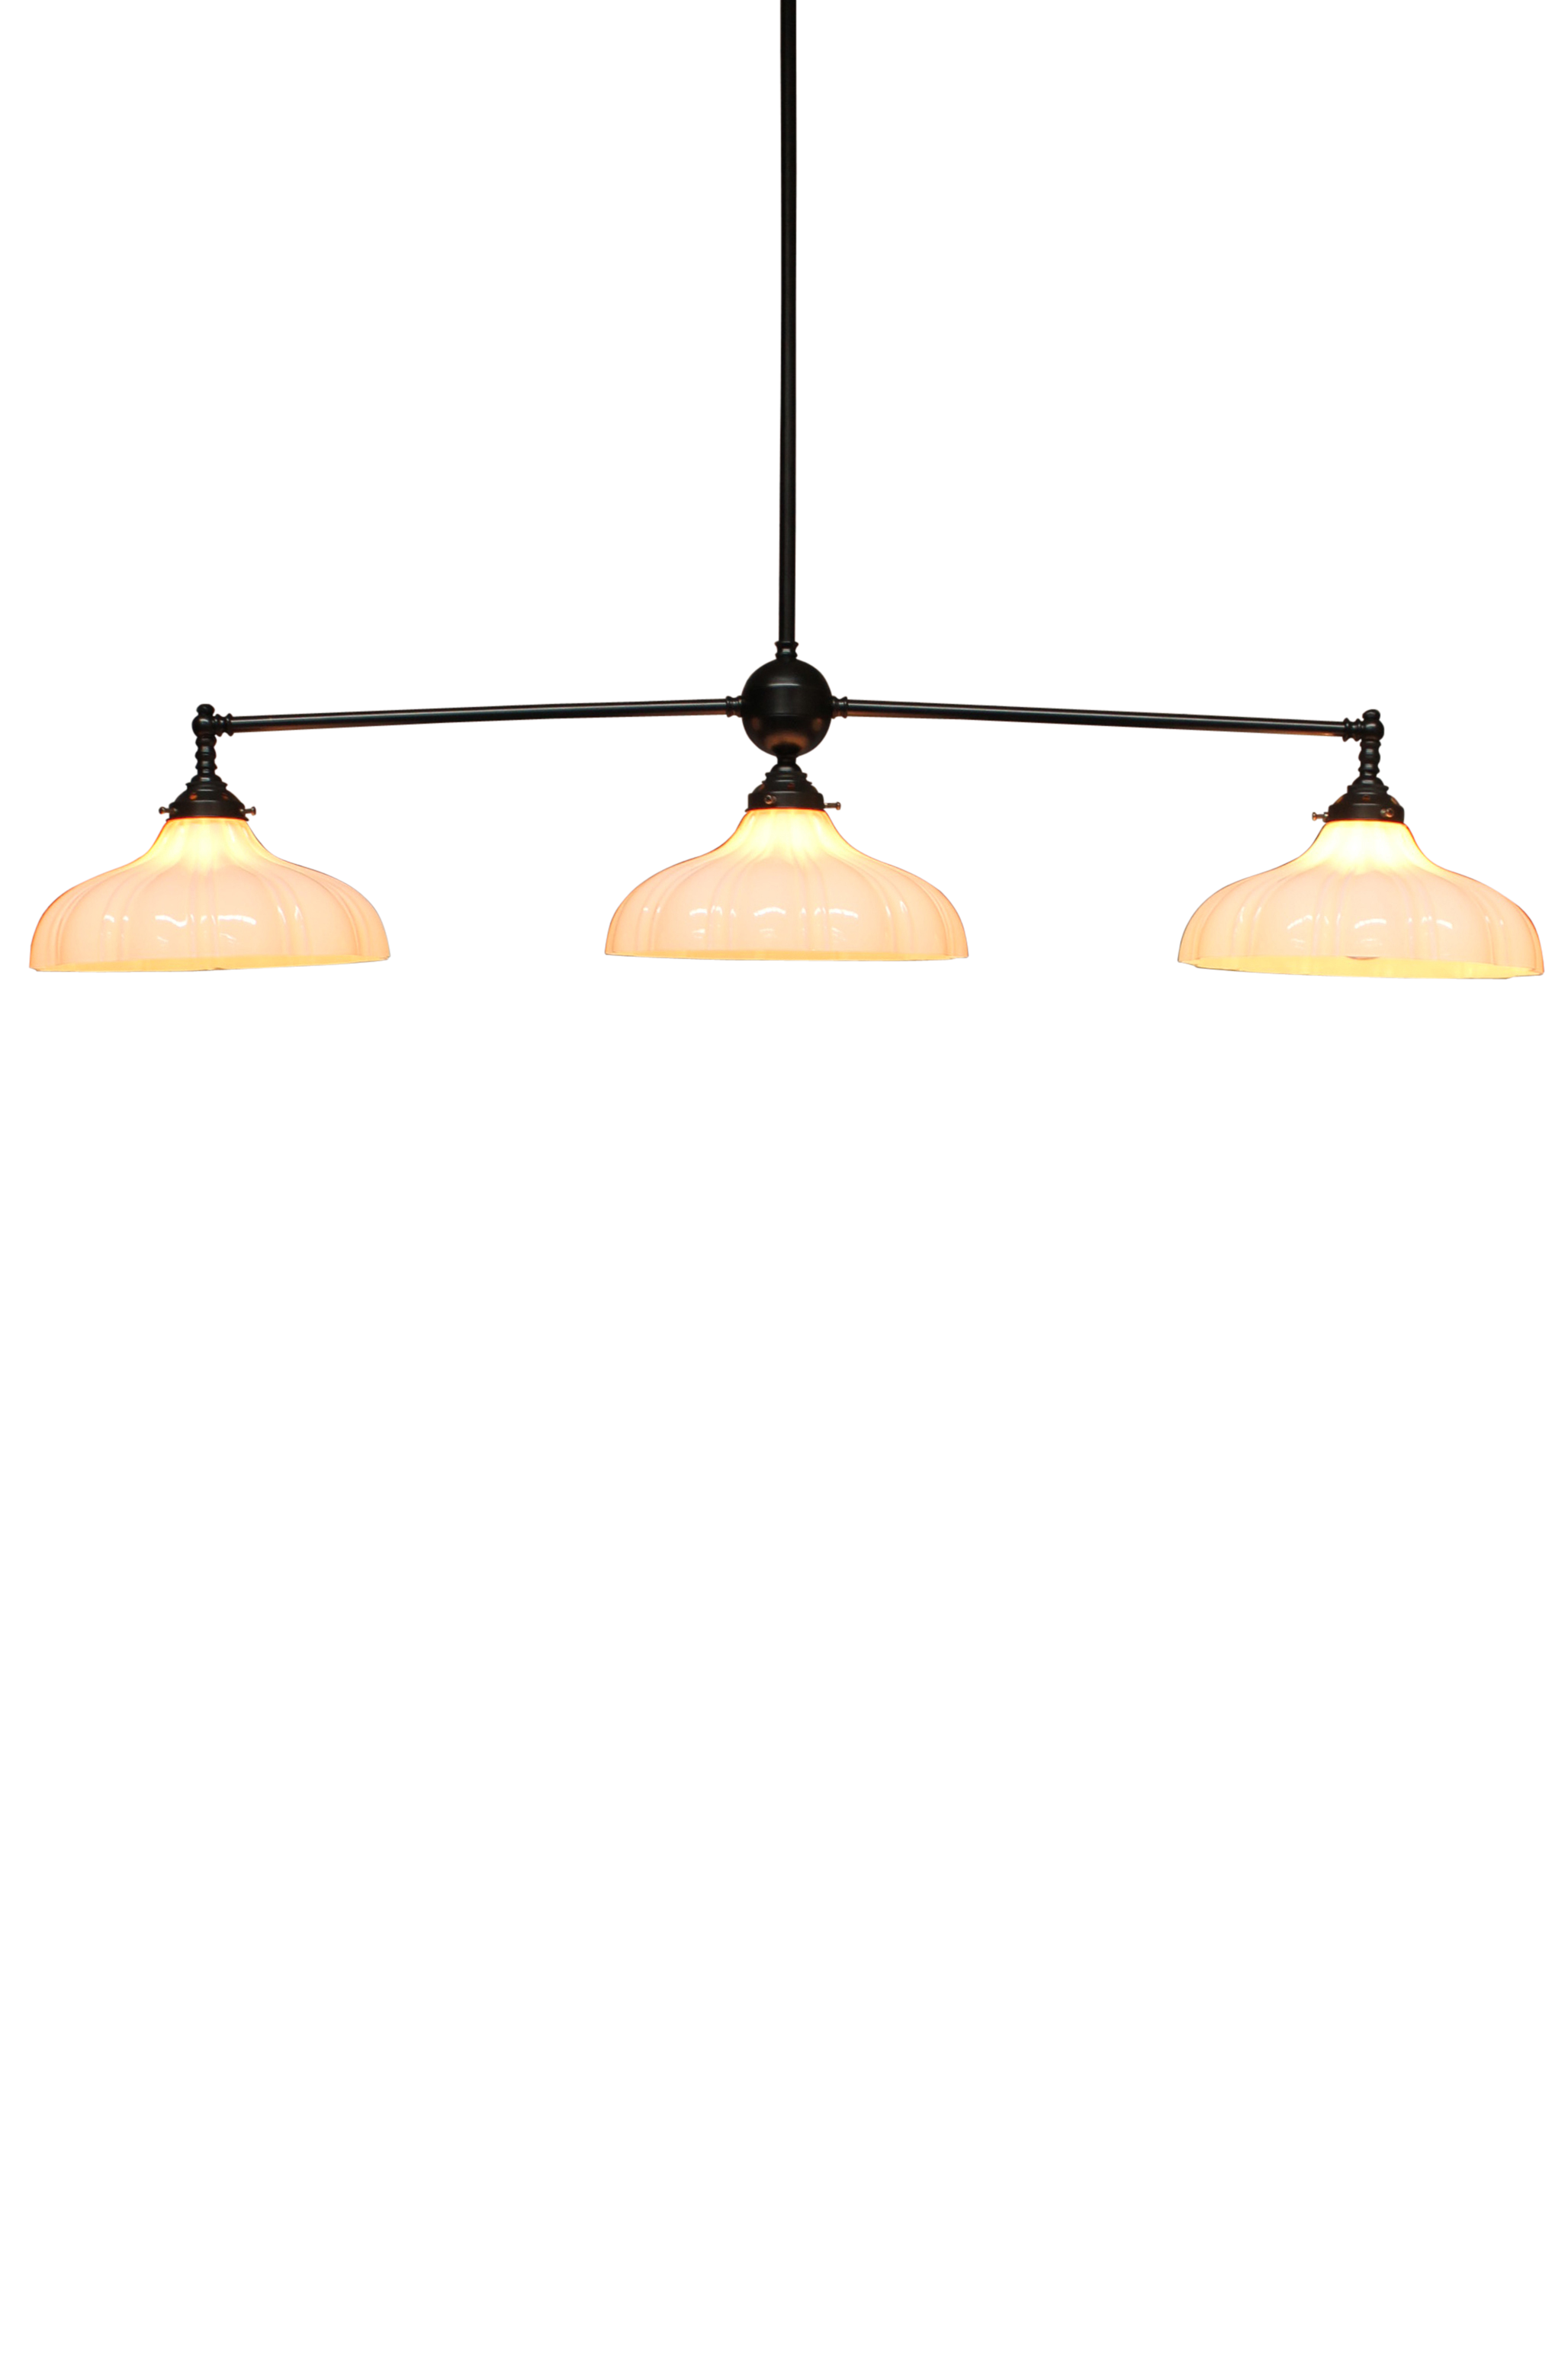 3 Light Glass Pendant - Mayflower by Fat Shack Vintage, a Chandeliers for sale on Style Sourcebook